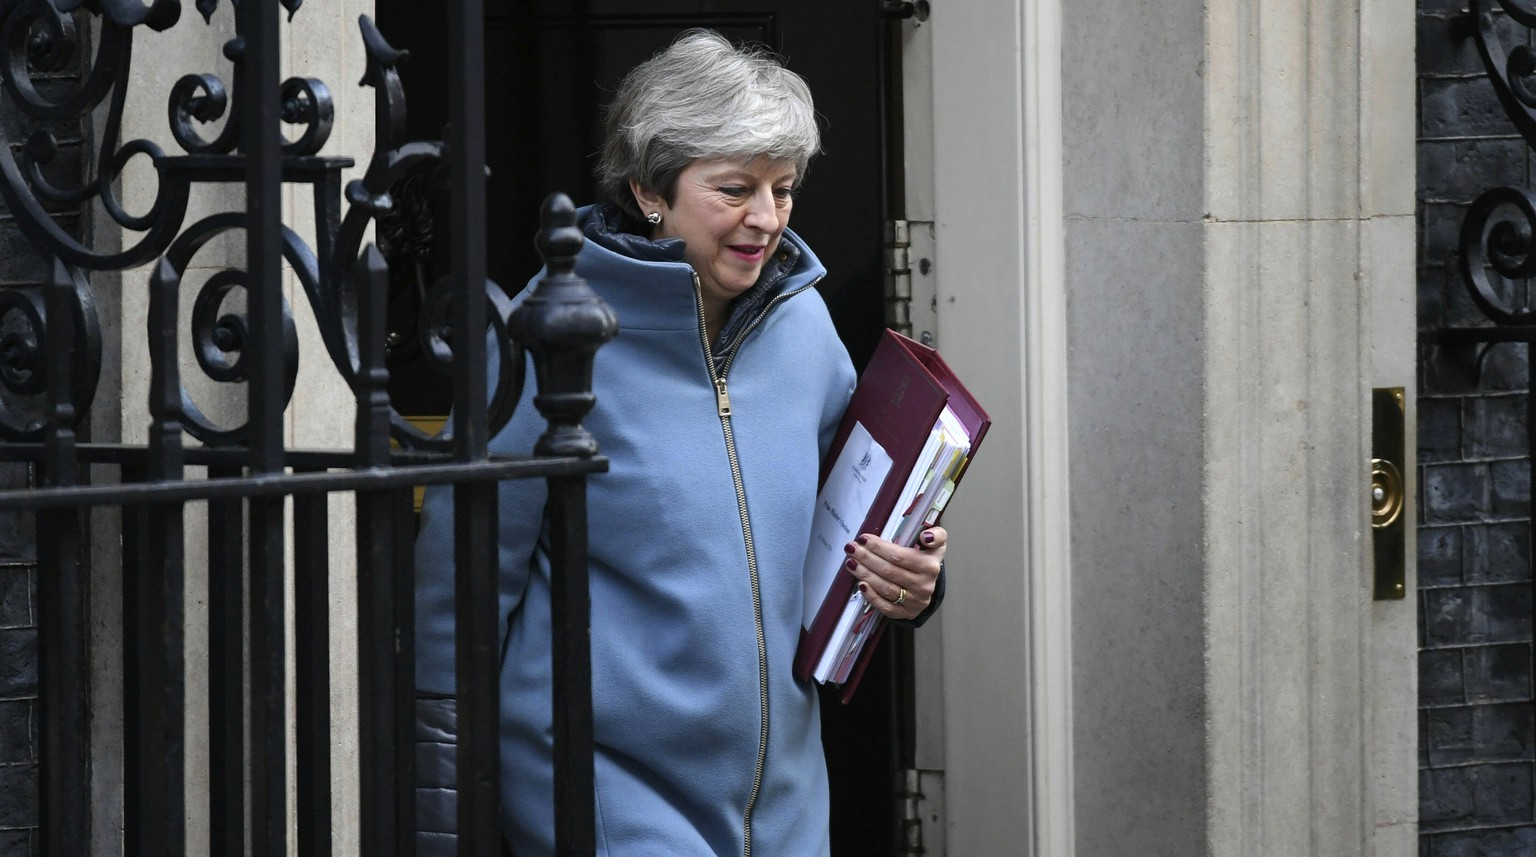 "British Prime Minister Theresa May leaves 10 Downing Street, London, for the House of Commons to face Prime Minister's Questions, in London Wednesday, Feb. 20, 2019. Britain's foreign secretary said that securing an orderly Brexit is ""of paramount importance"" as he visited Germany on Wednesday, and insisted the UK can leave the European Union on March 29 as planned if a compromise deal is found. Jeremy Hunt was meeting officials in Berlin ahead of Prime Minister Theresa May's trip to Brussels later Wednesday for talks with EU Commission President Jean-Claude Juncker. (Stefan Rosseau/PA via AP)"